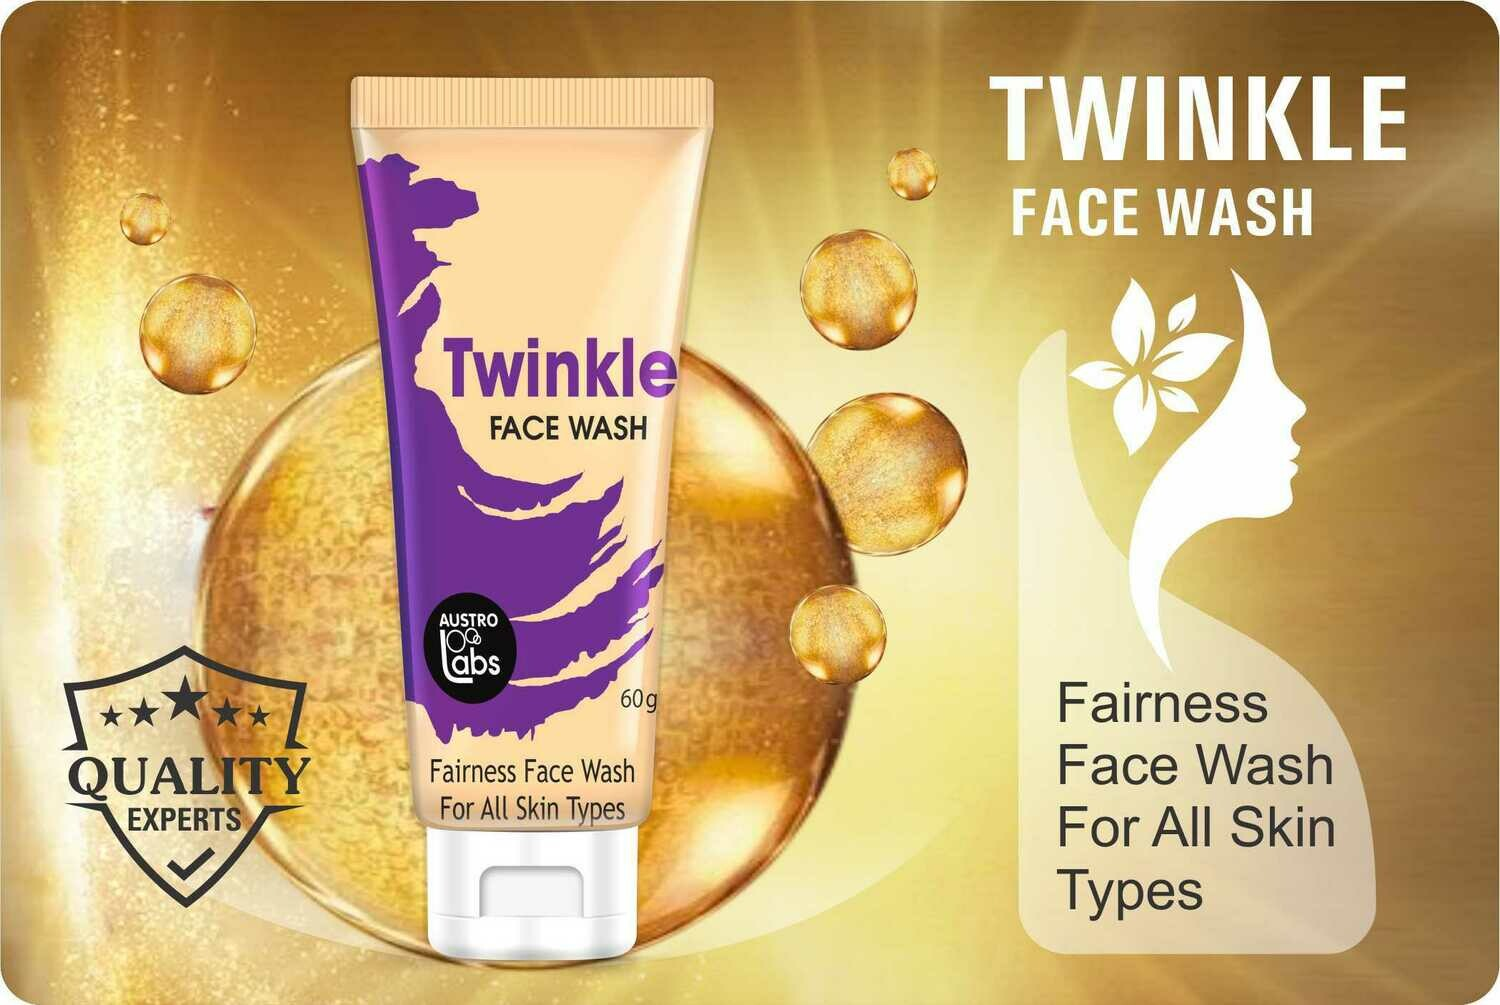 Twinkle Face Wash